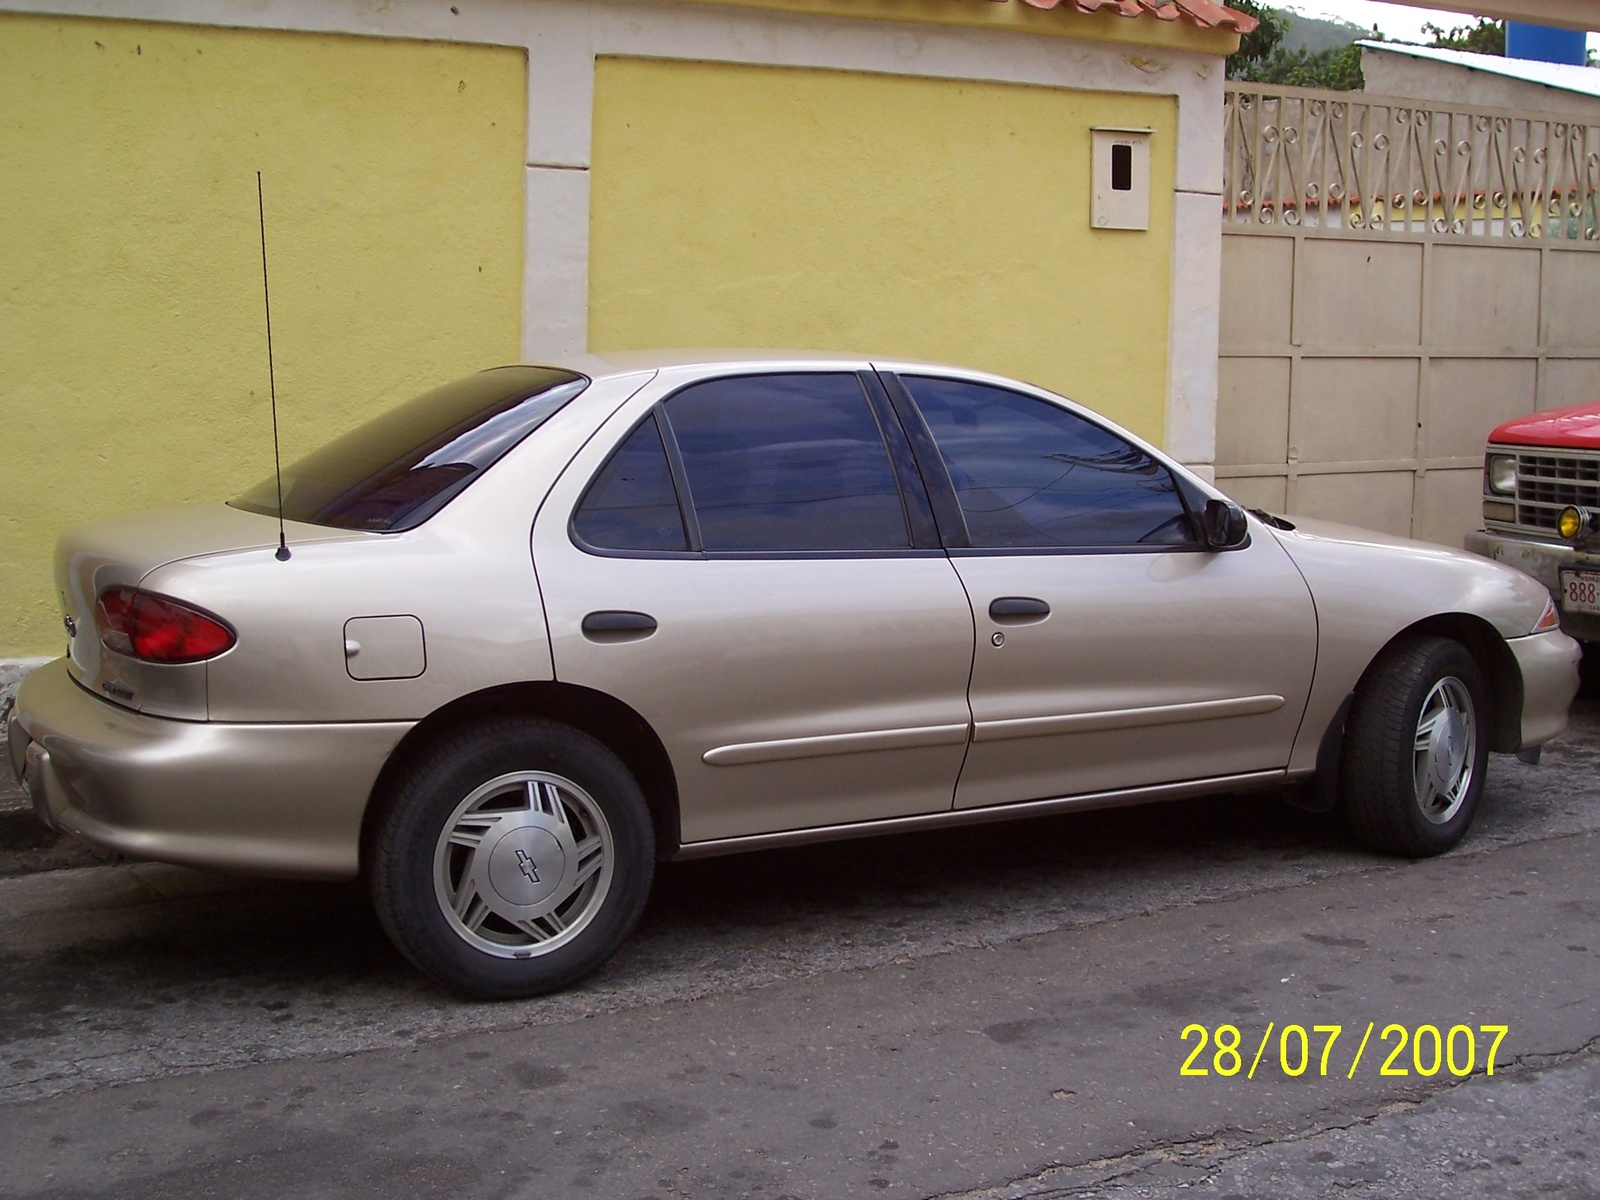 Picture of 1997 chevrolet cavalier ls exterior